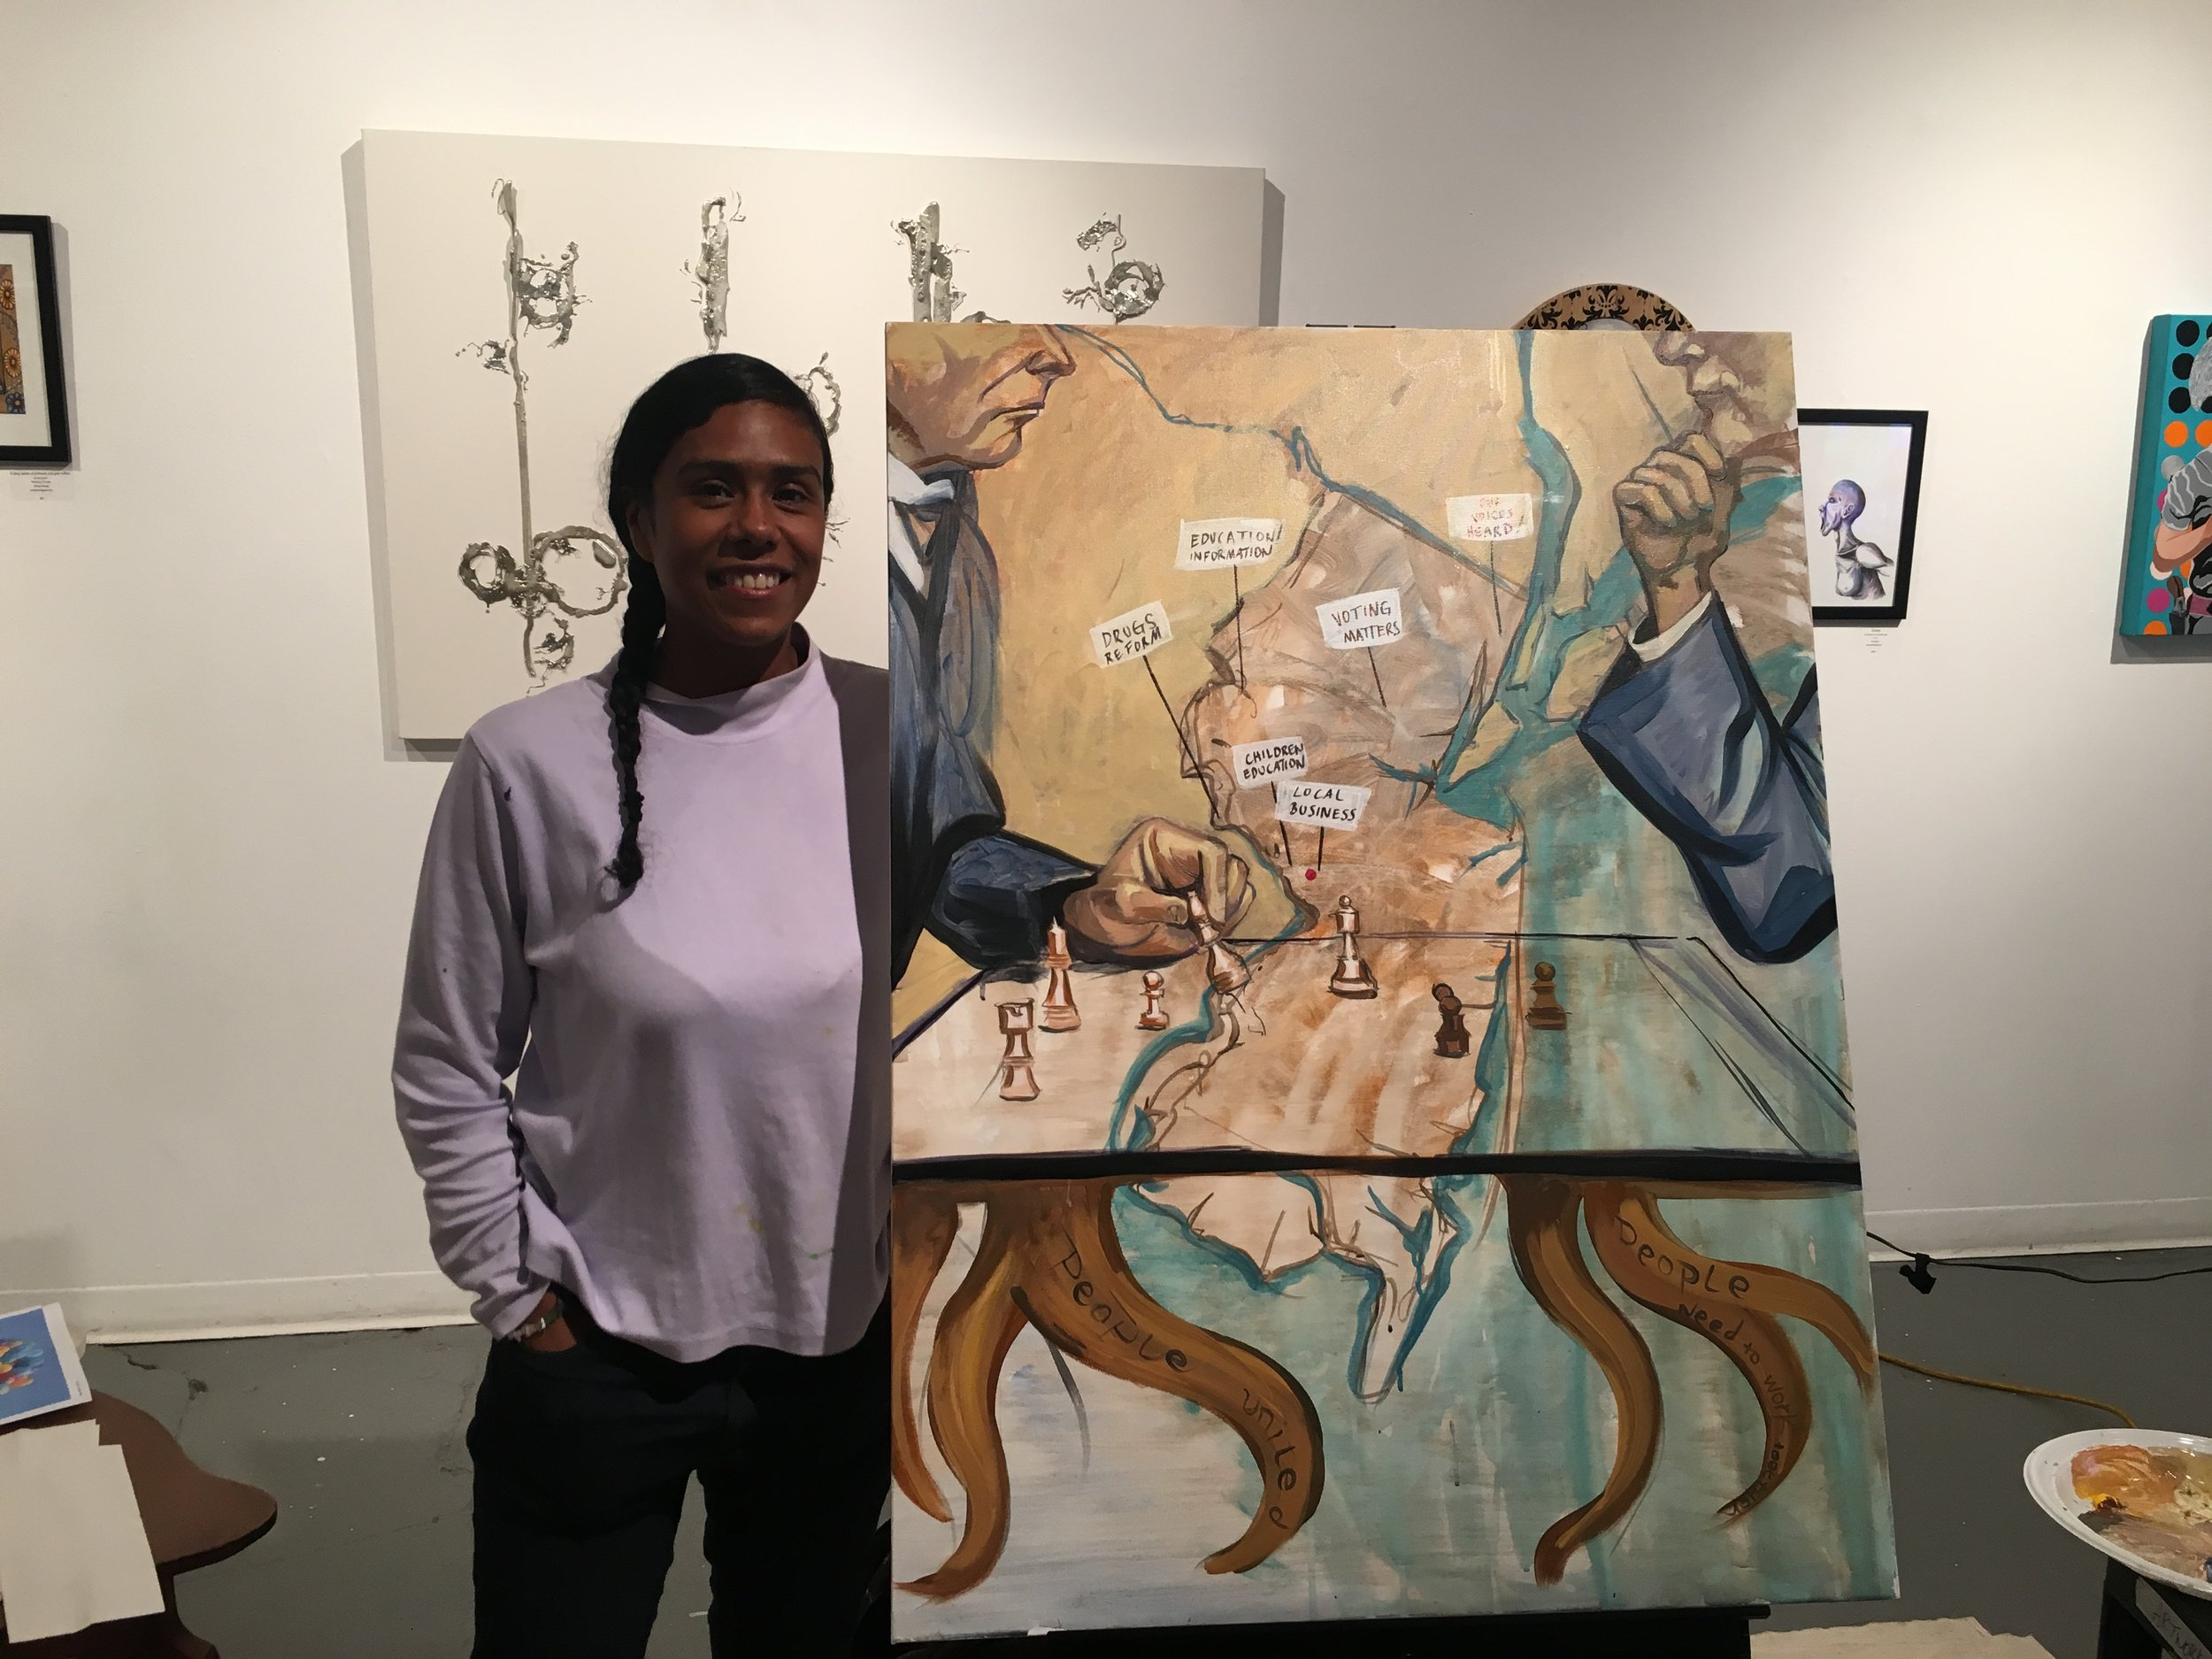 Marthalicia Matarrita poses with the painting she created during Artworks' Political Potluck.